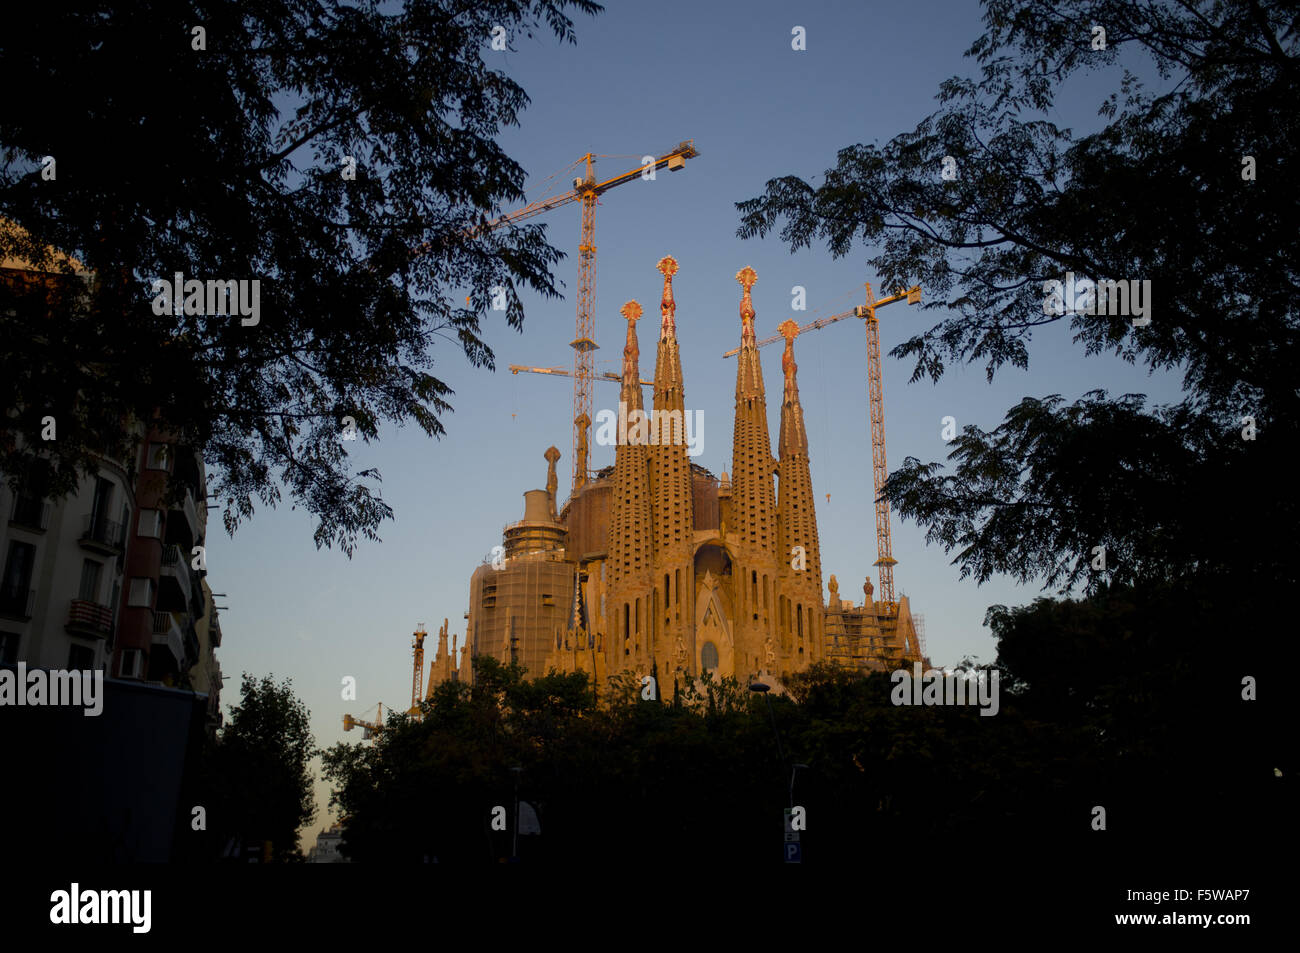 Barcelona, Catalonia, Spain. 9th Nov, 2015. La Sagrada Familia is seen through the trees at sunset in Barcelona. Stock Photo